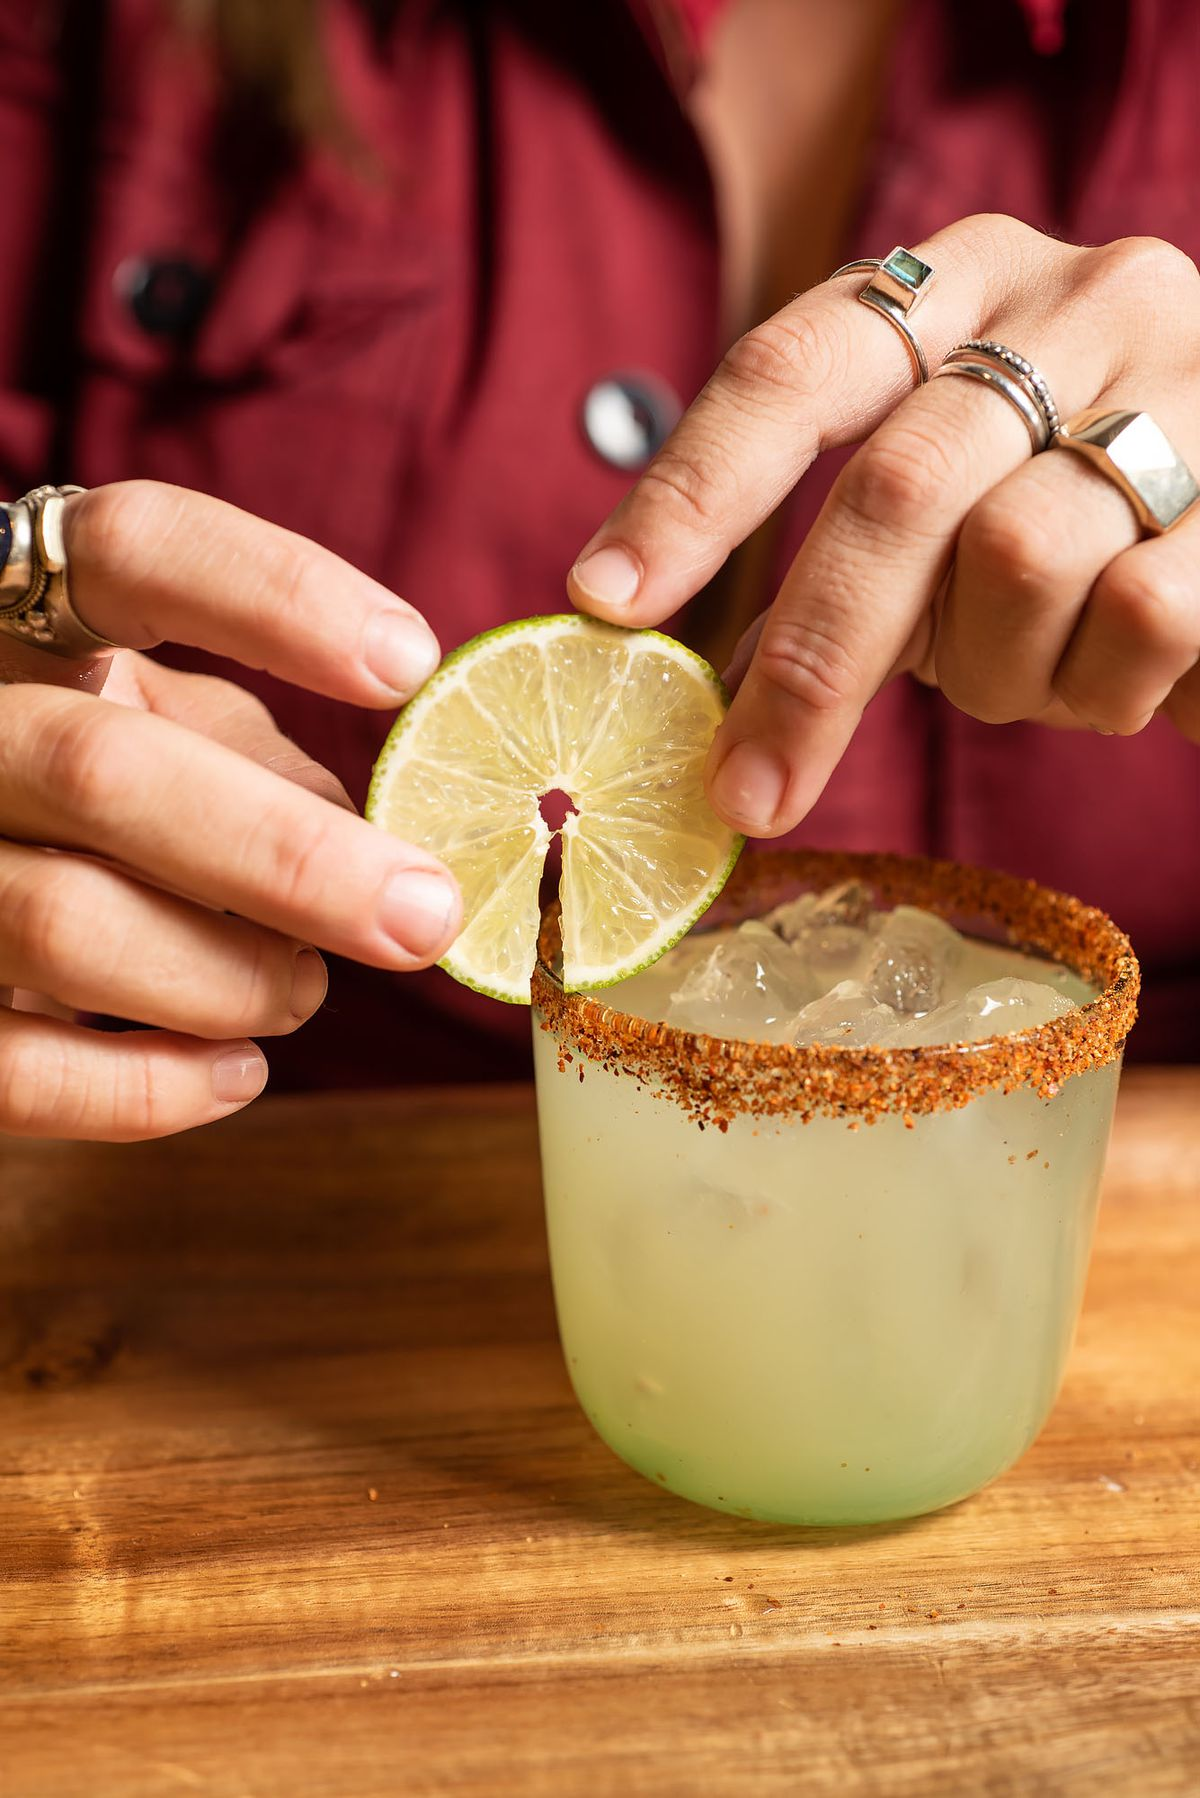 Gavaldon uses two hands to add a circle lime garnish to a lime-green cocktail.